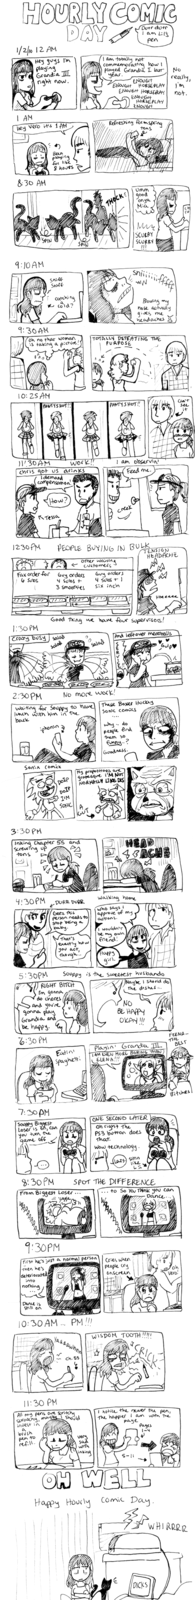 Hourly_Comic_Day___2010__by_taeshilh.png